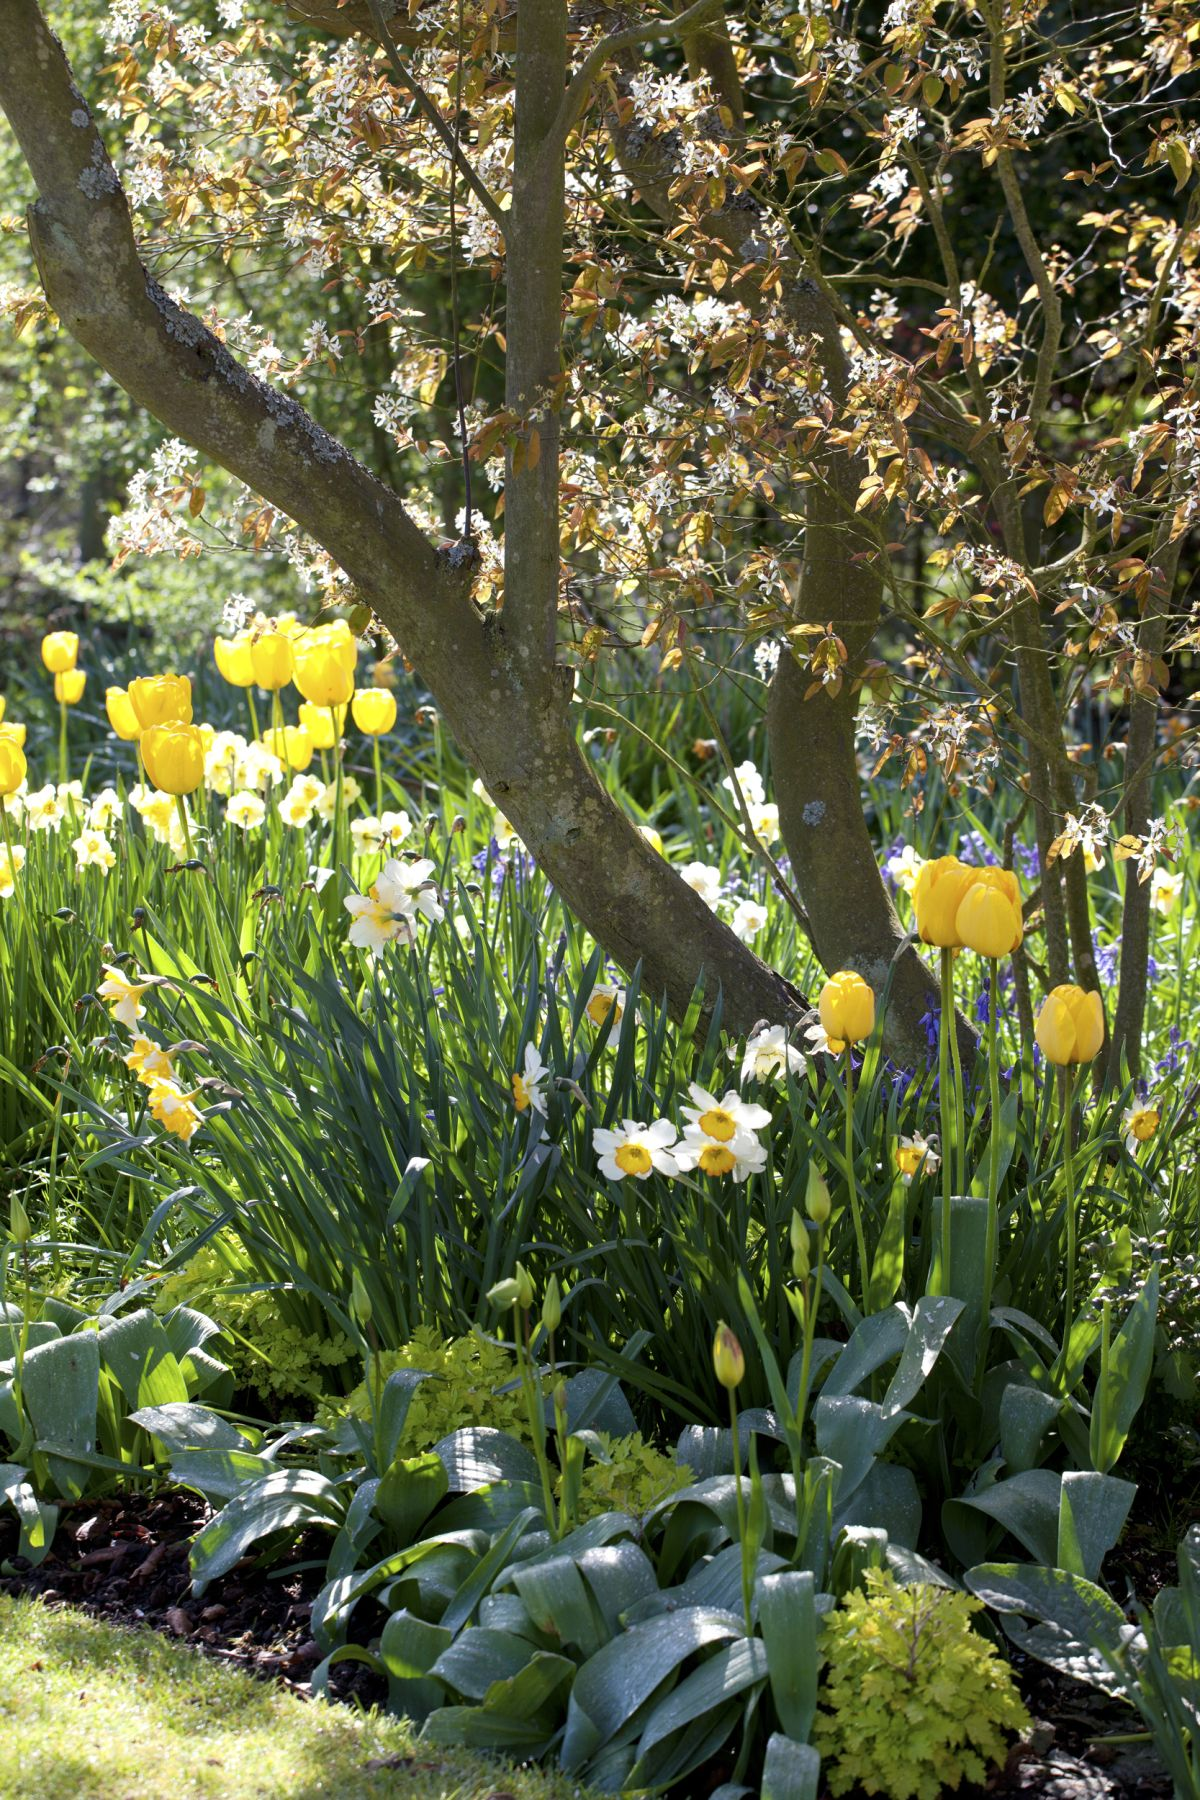 How to plant bulbs – with expert tips from Alan Titchmarsh